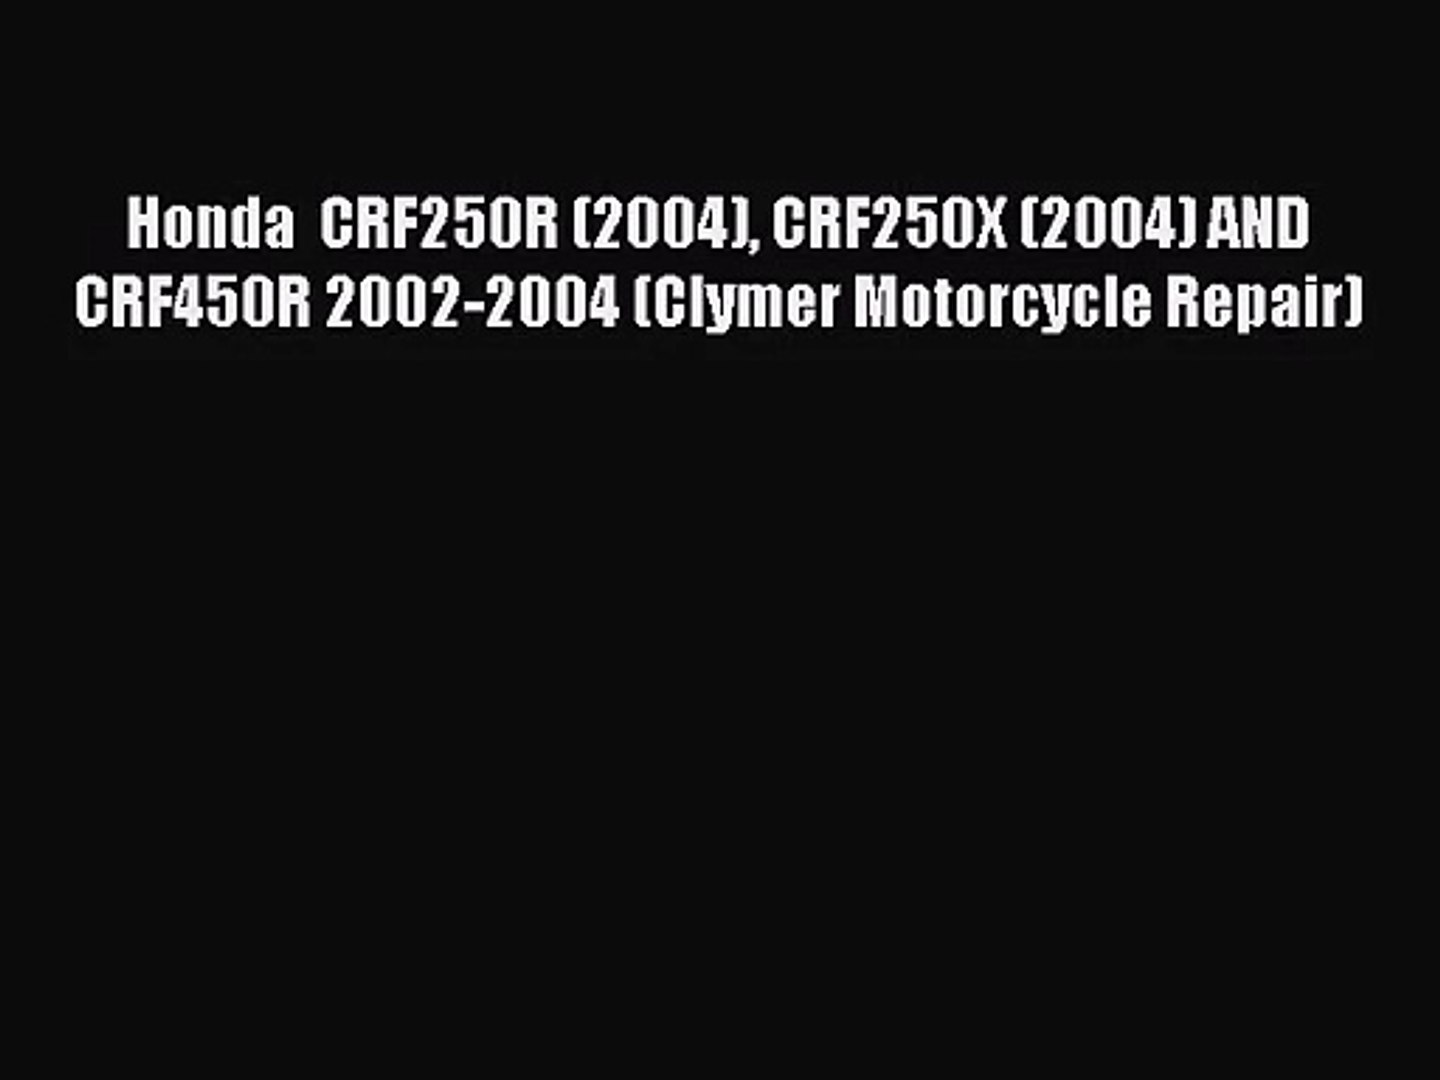 [PDF Download] Honda  CRF250R (2004) CRF250X (2004) AND CRF450R 2002-2004 (Clymer Motorcycle